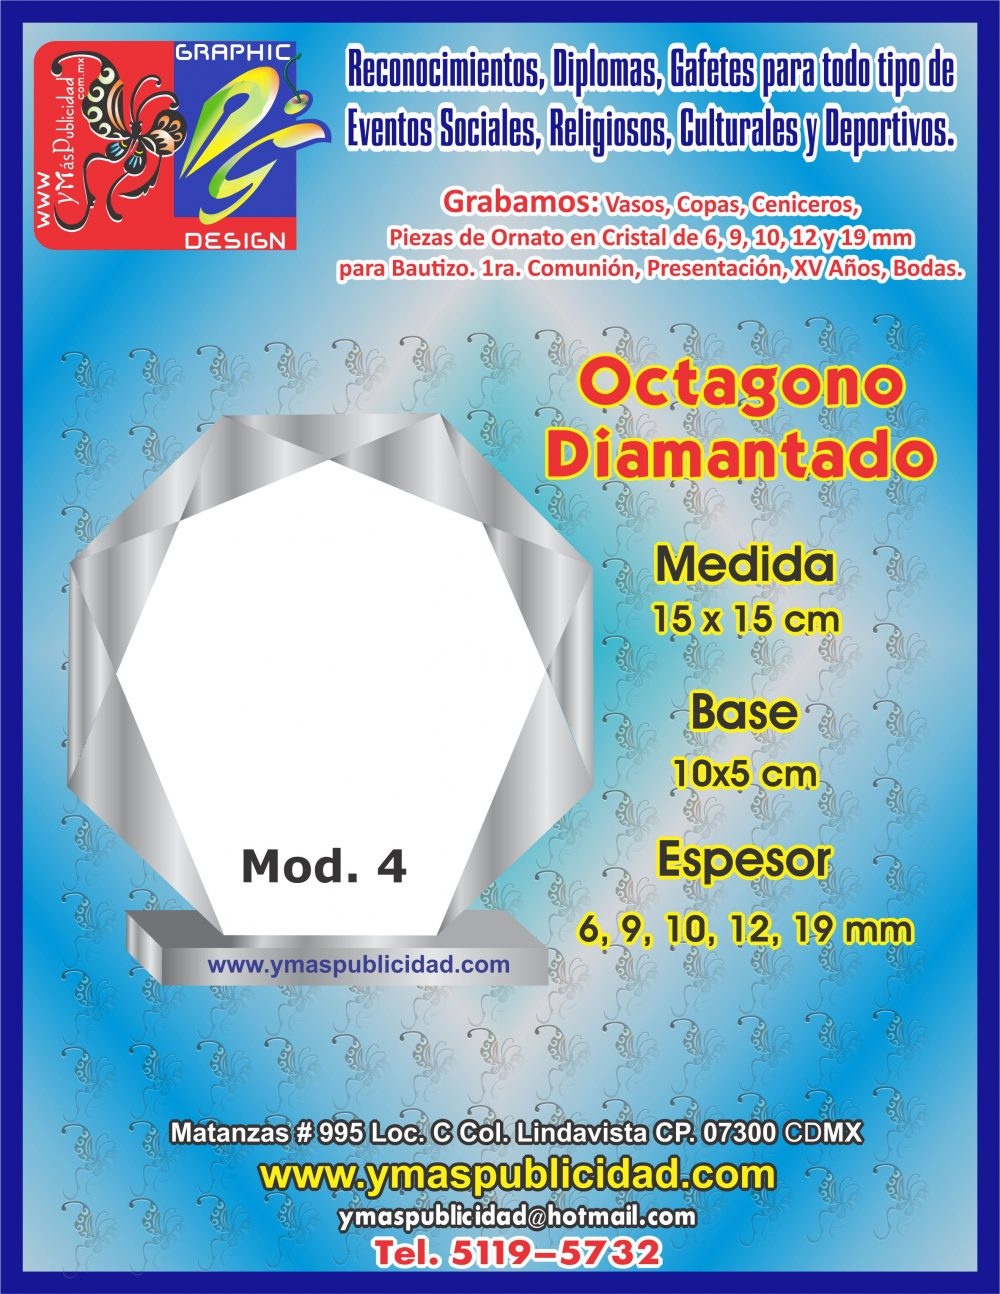 OCTAGONO DIAMANTADO